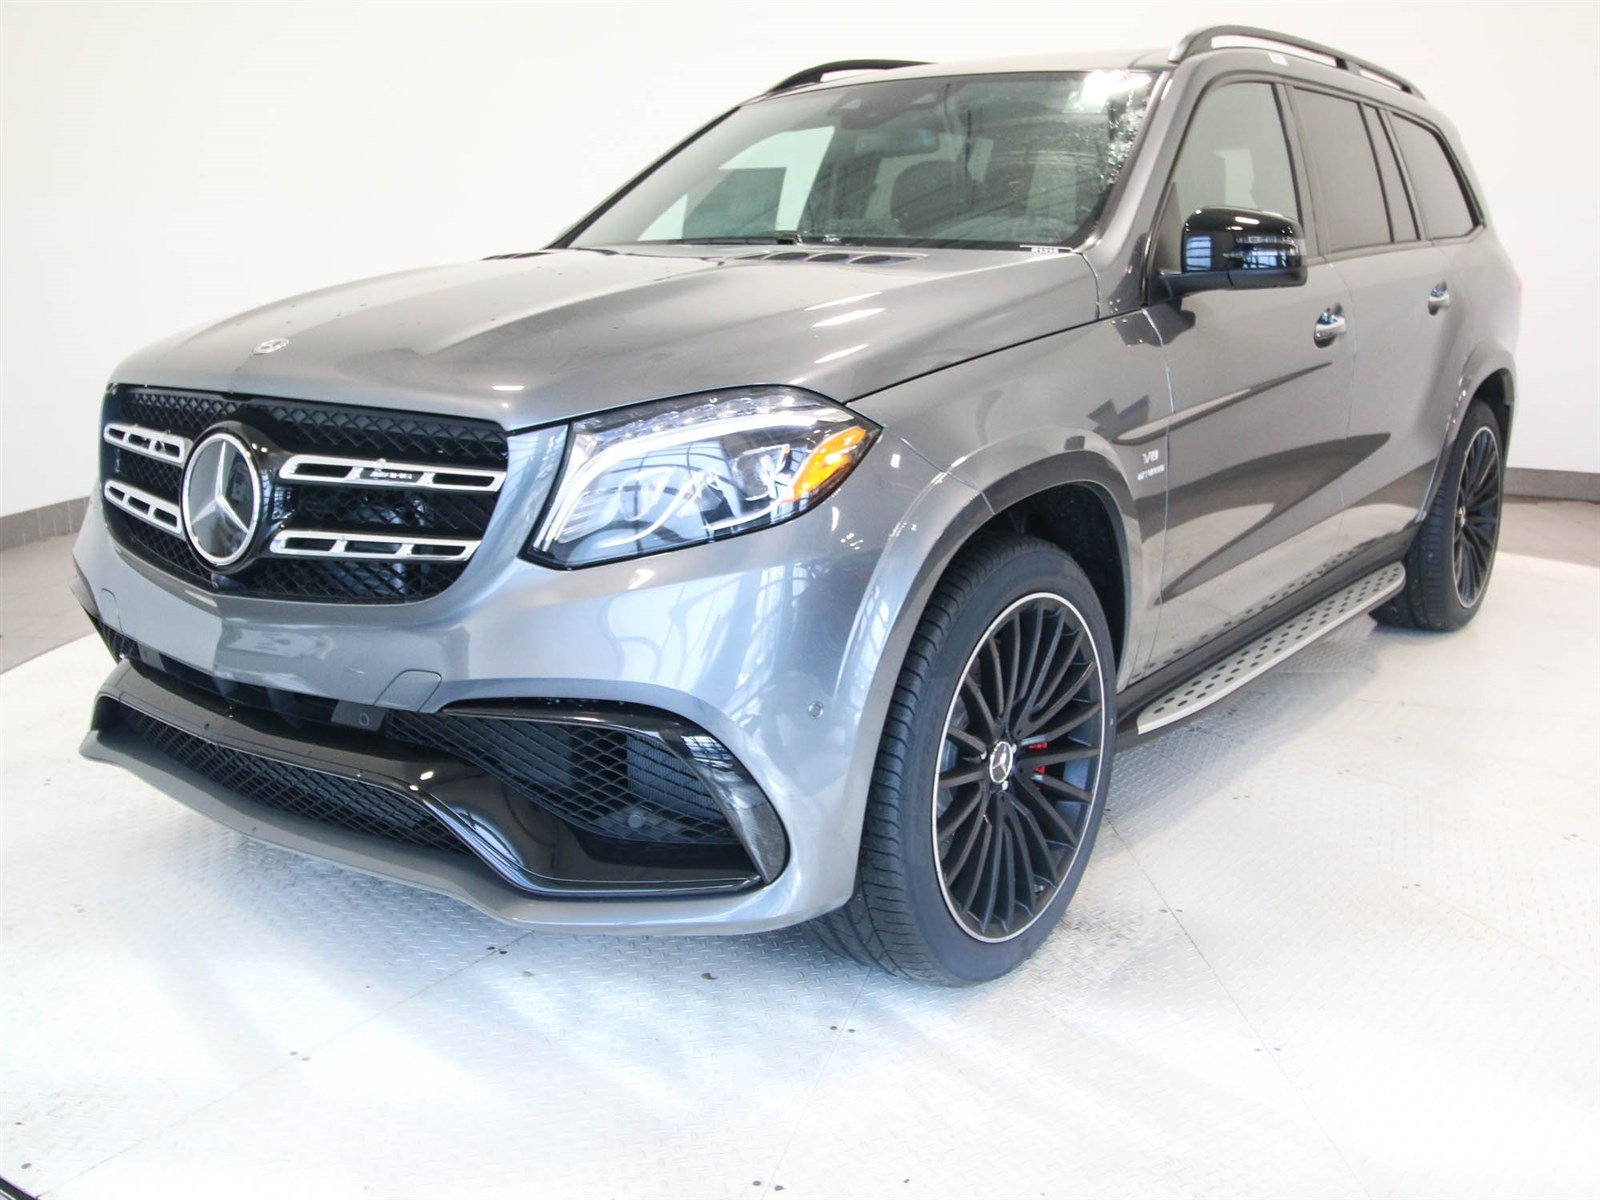 New 2018 mercedes benz gls gls 63 amg suv suv in fort for Gls mercedes benz suv